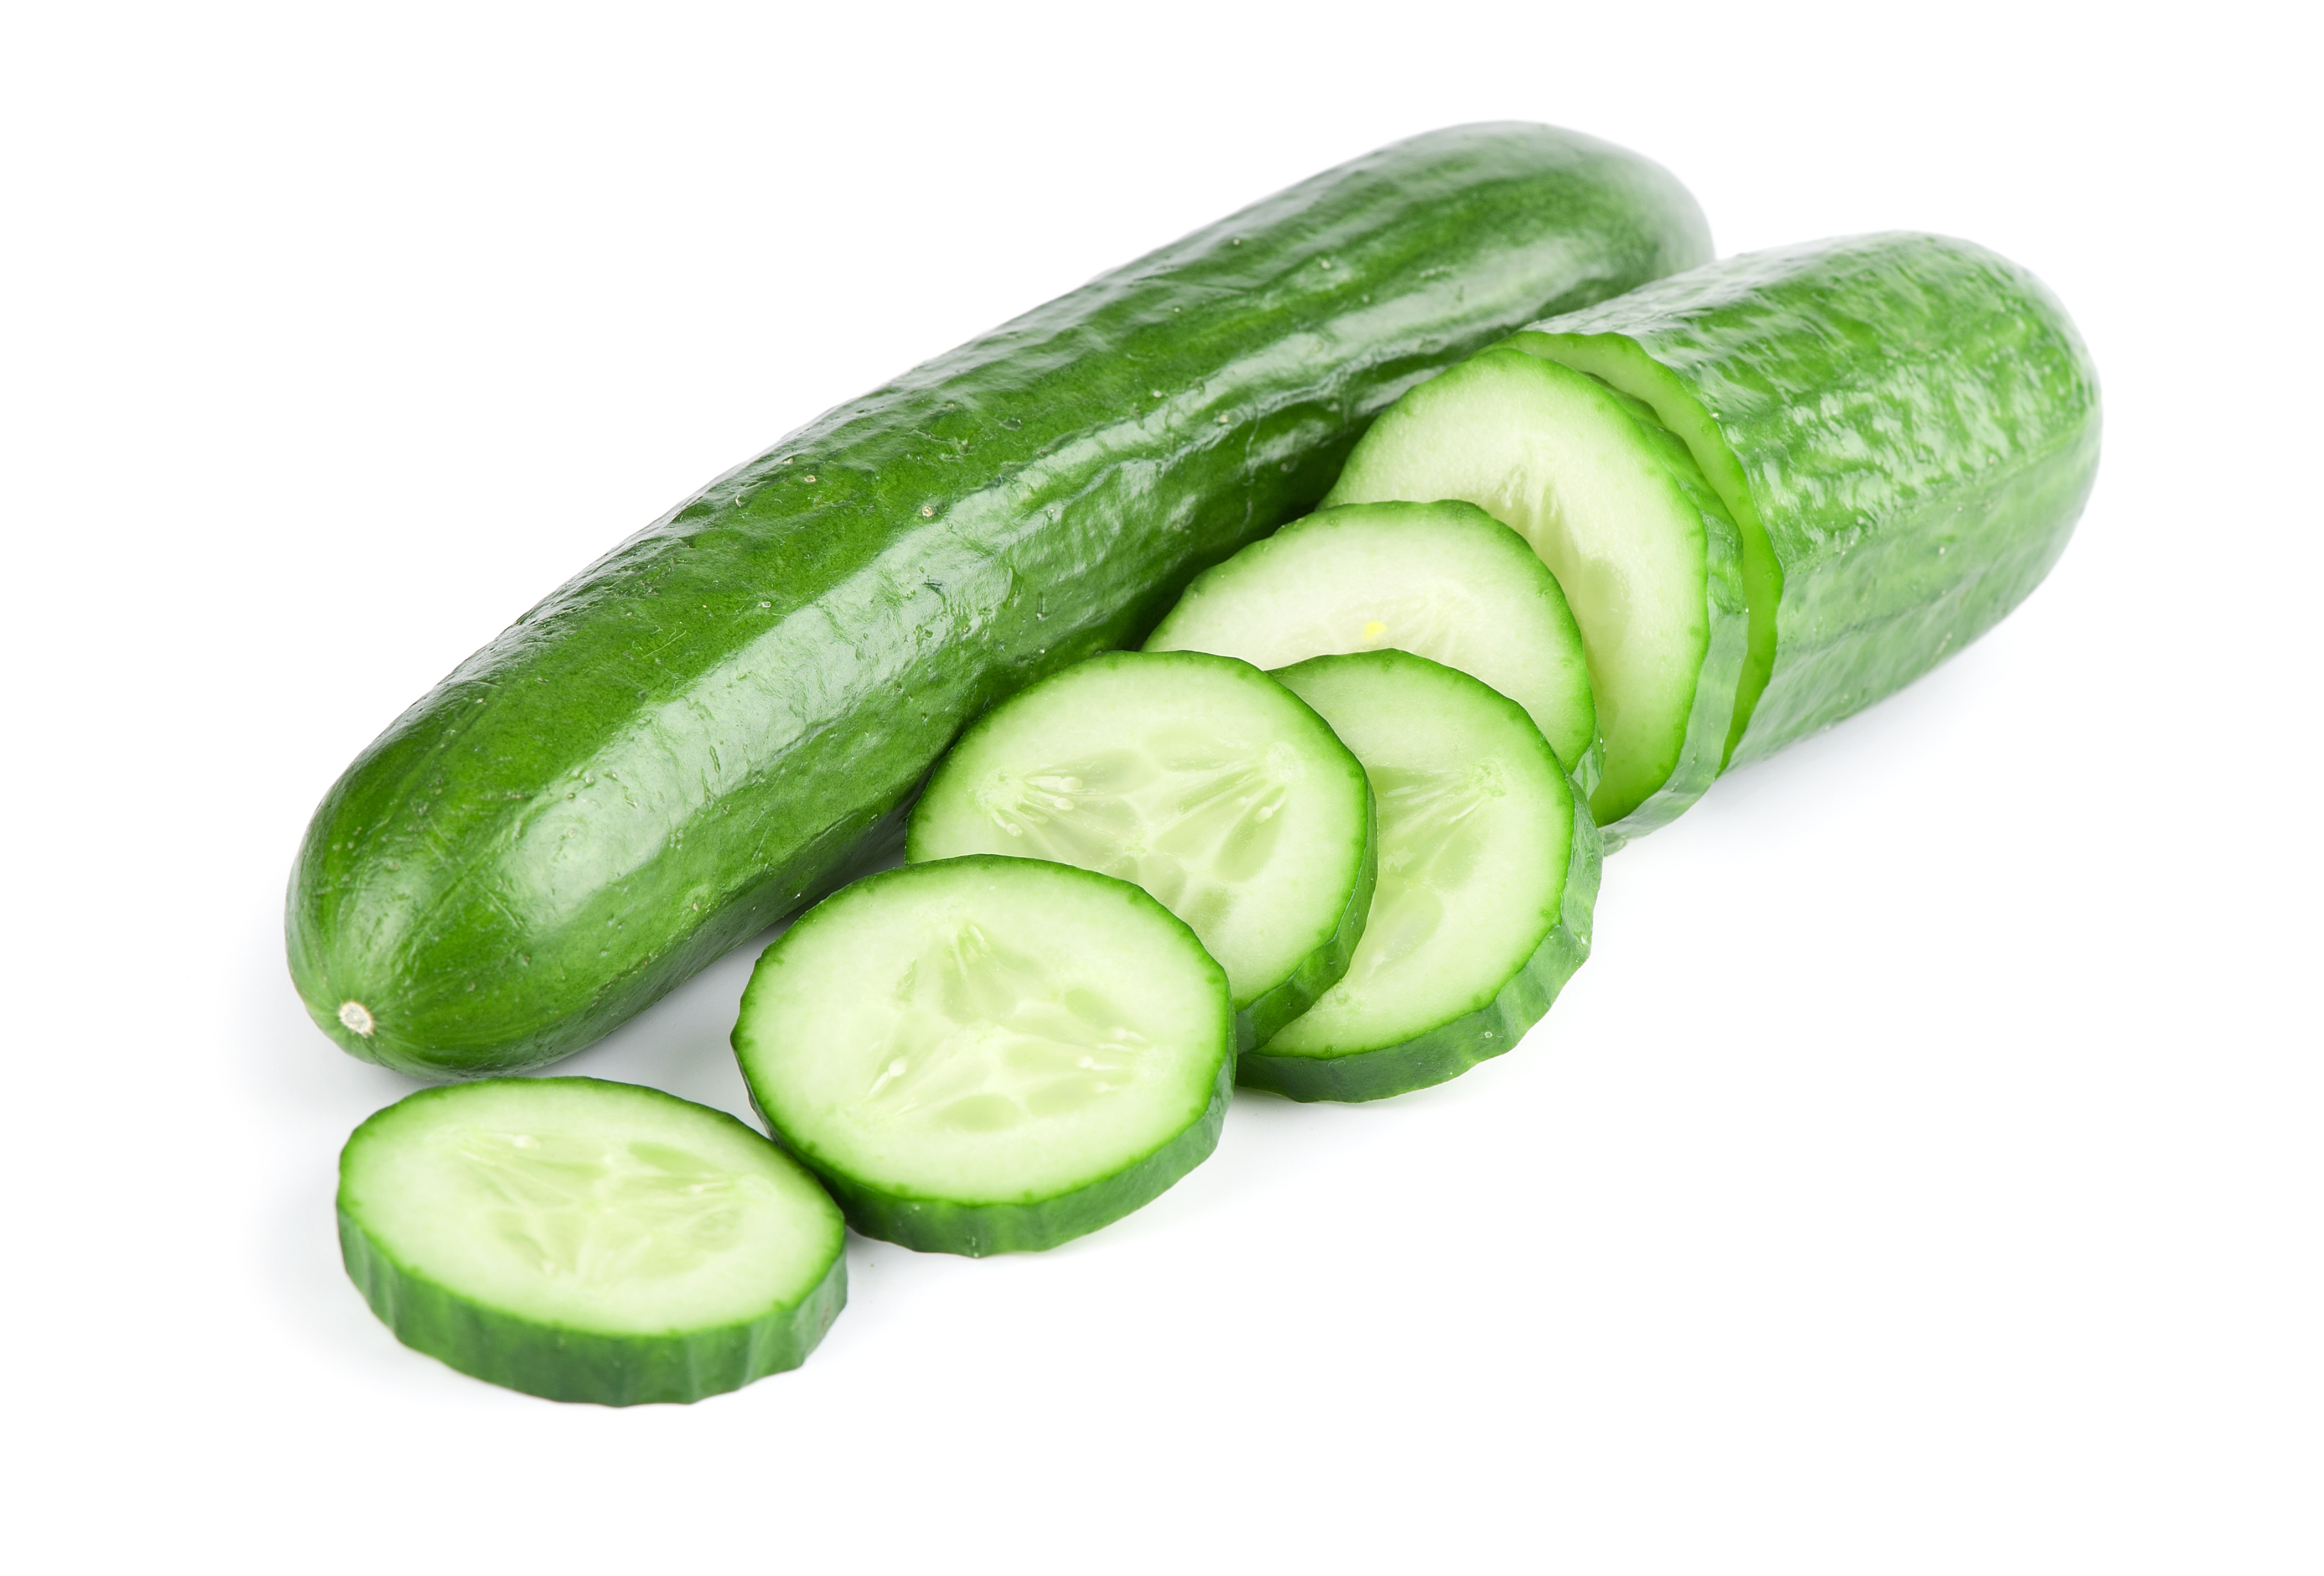 Cucumber Pics, Food Collection